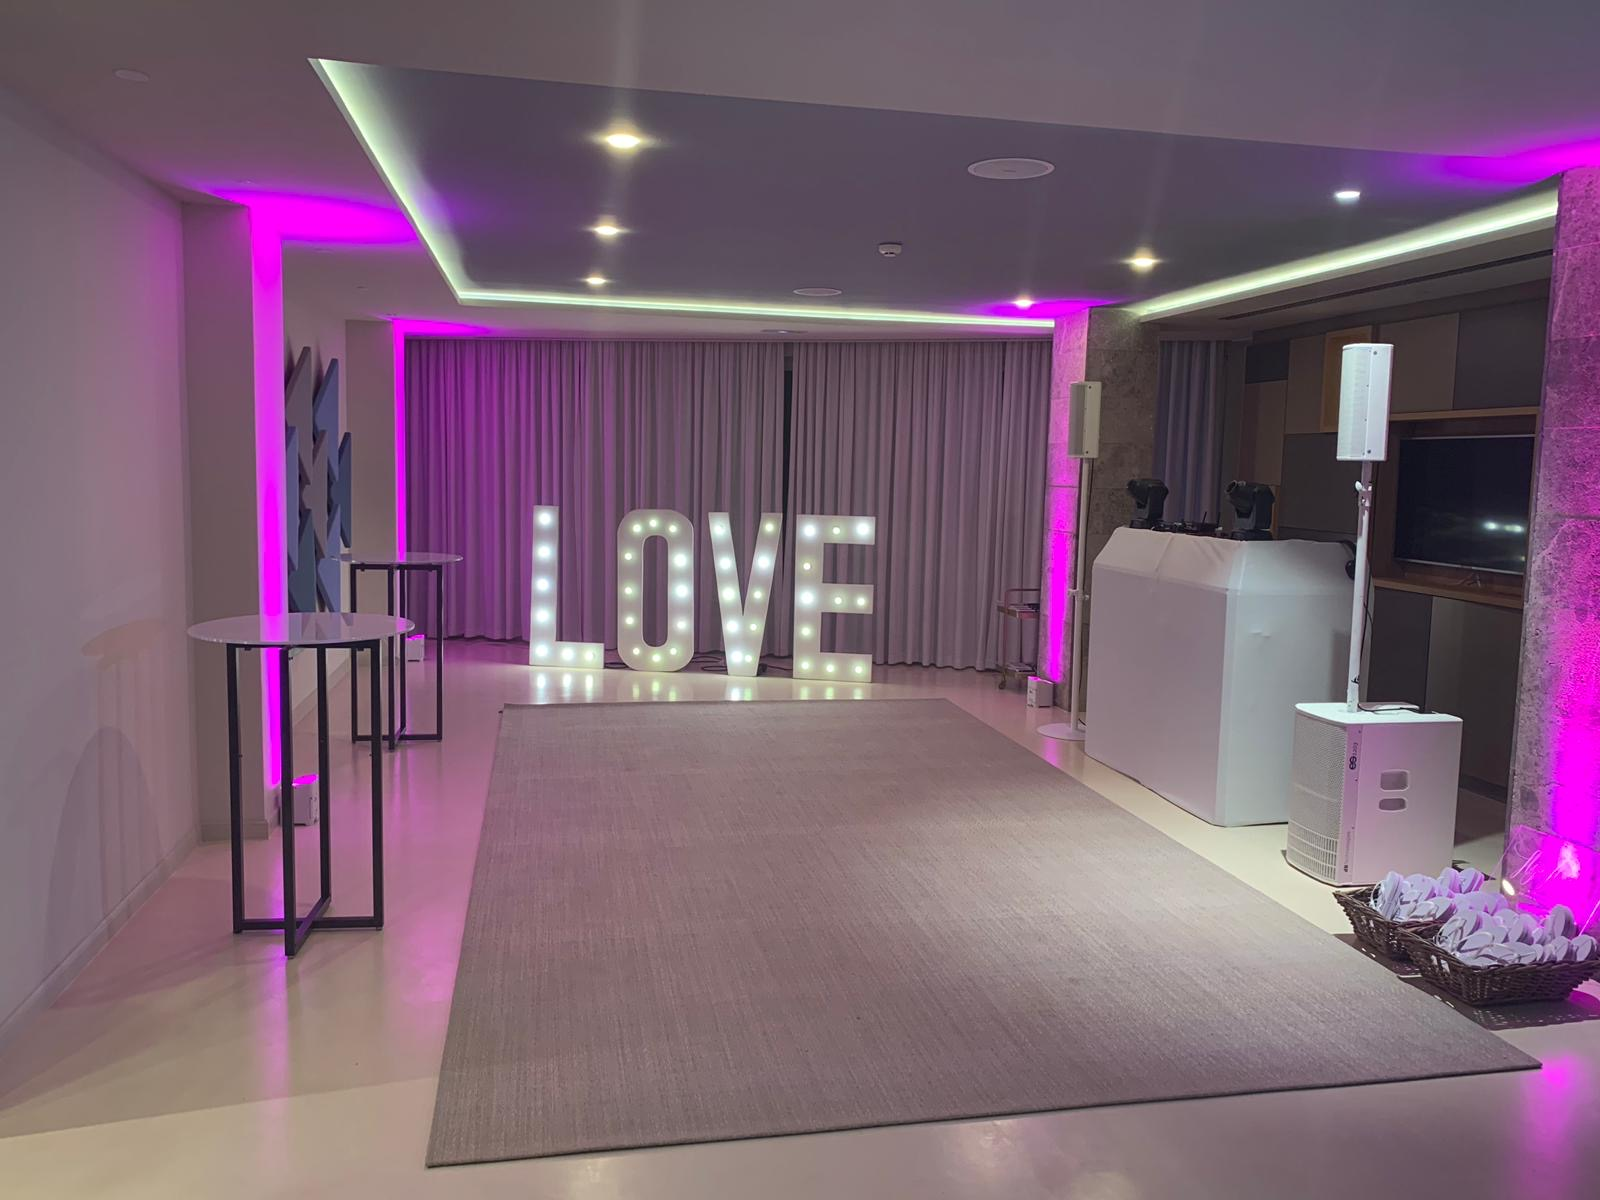 Ibiza wedding equipment hire for weddings at 7pines.